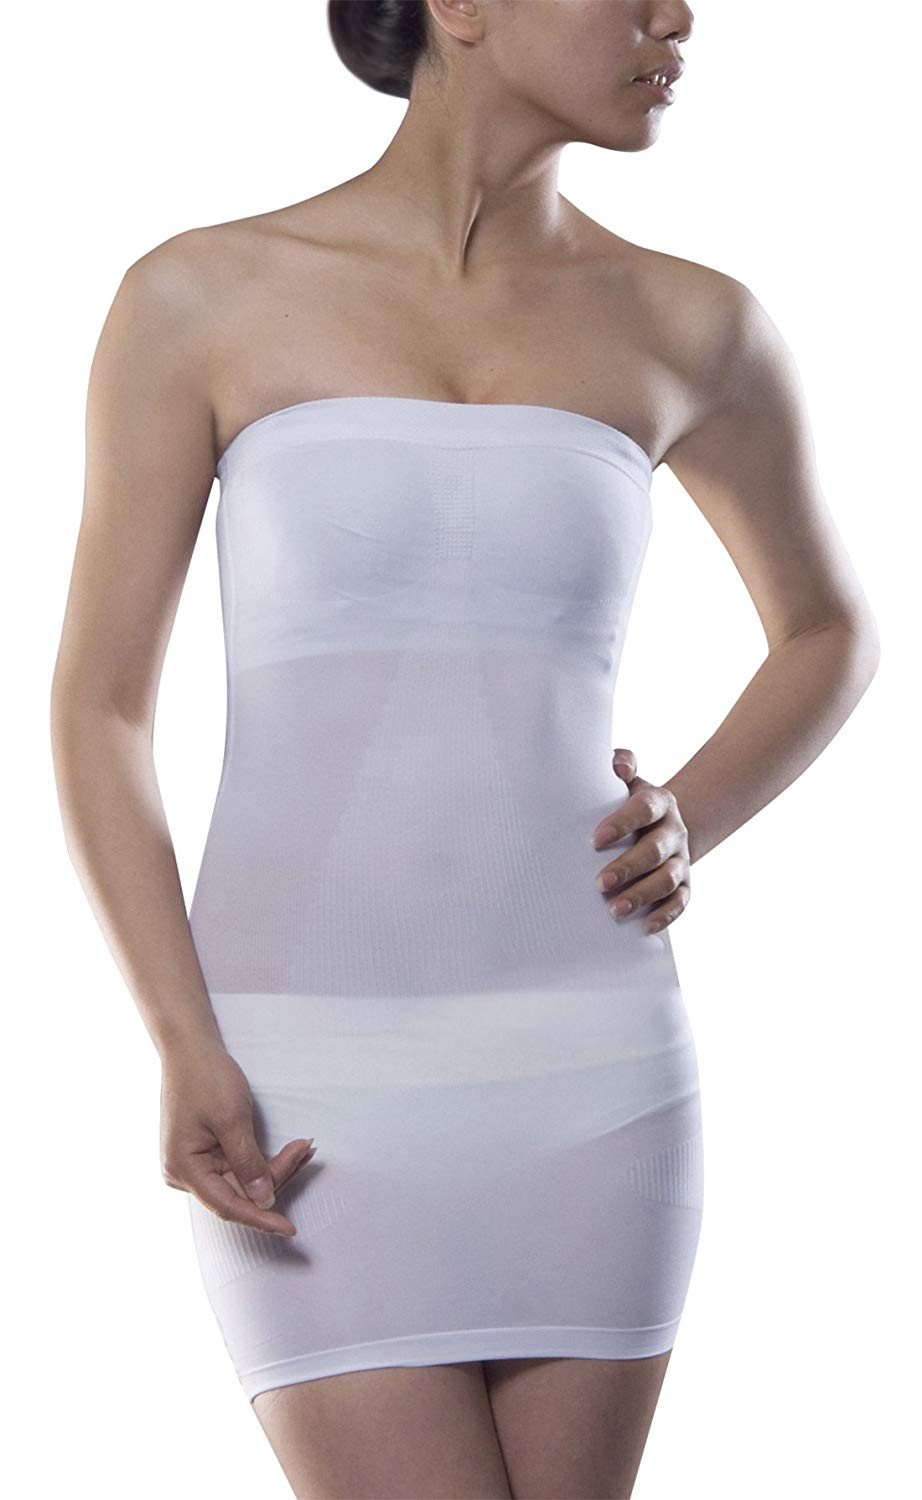 e7a70757080b4 Get Quotations · Niyatree Women s Slim Under Dress Full Body Slip Shaper  Strapless Seamless Tube Shapewear